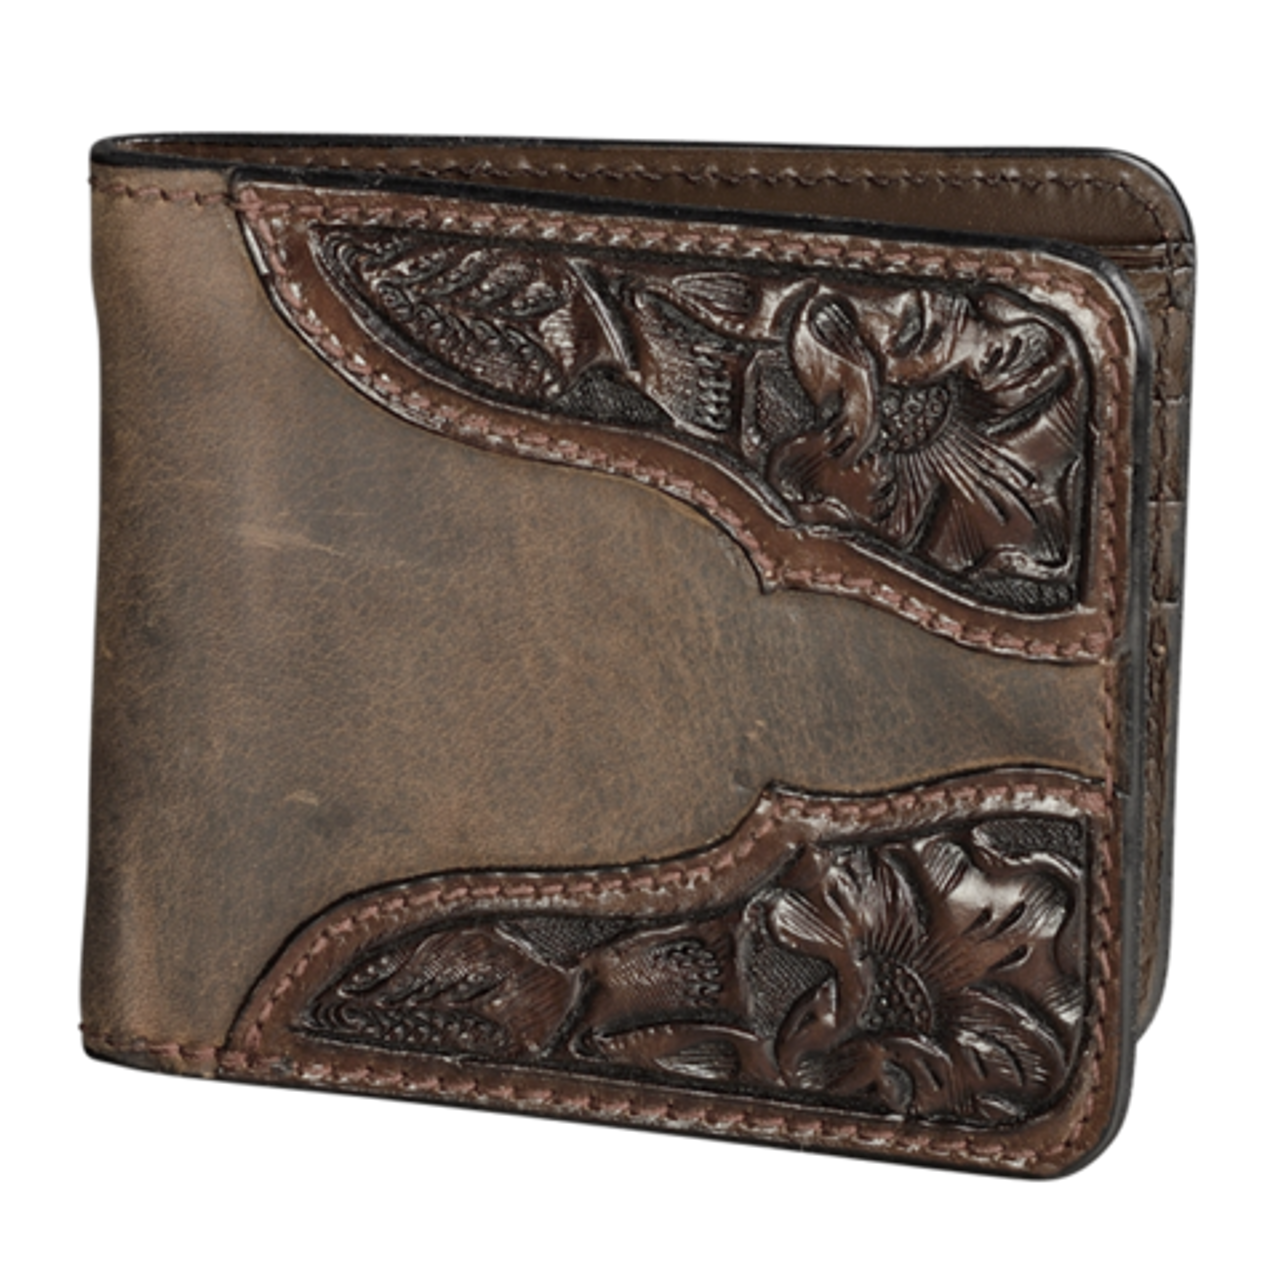 3c81ea4a6 Vogt Mens Accessories - Wallets - Chocolate Brown Leather Wallet with Hand  Tooled Floral Corners